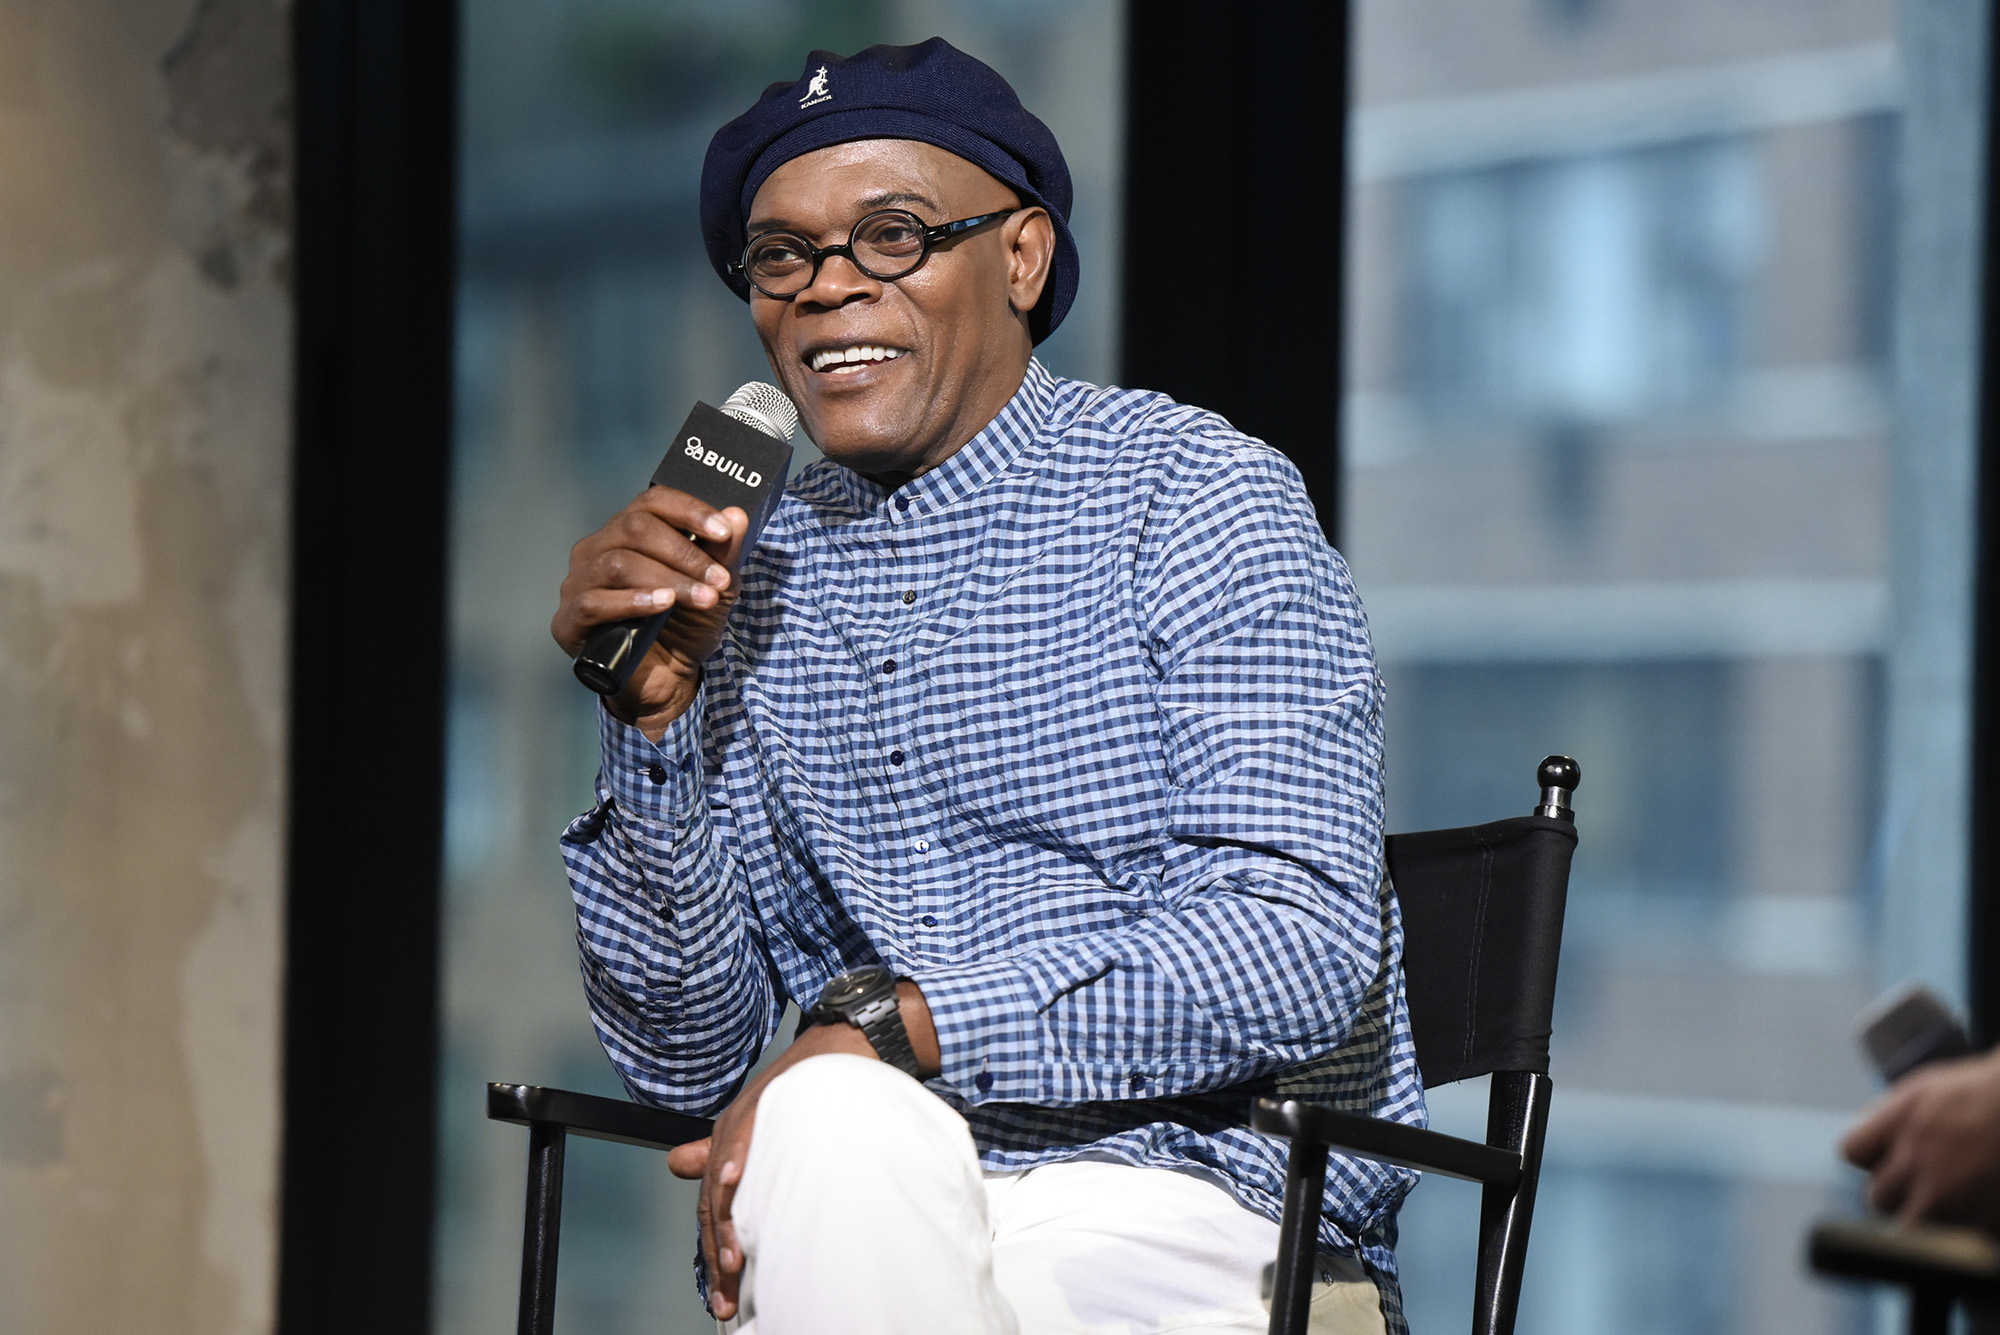 Samuel L. Jackson attends AOL Build Presents - Samuel L. Jackson from the new movie  The Legend Of Tarzan  at AOL Studios in New York on June 29, 2016 in New York City.  (Photo by Matthew Eisman/Getty Images)